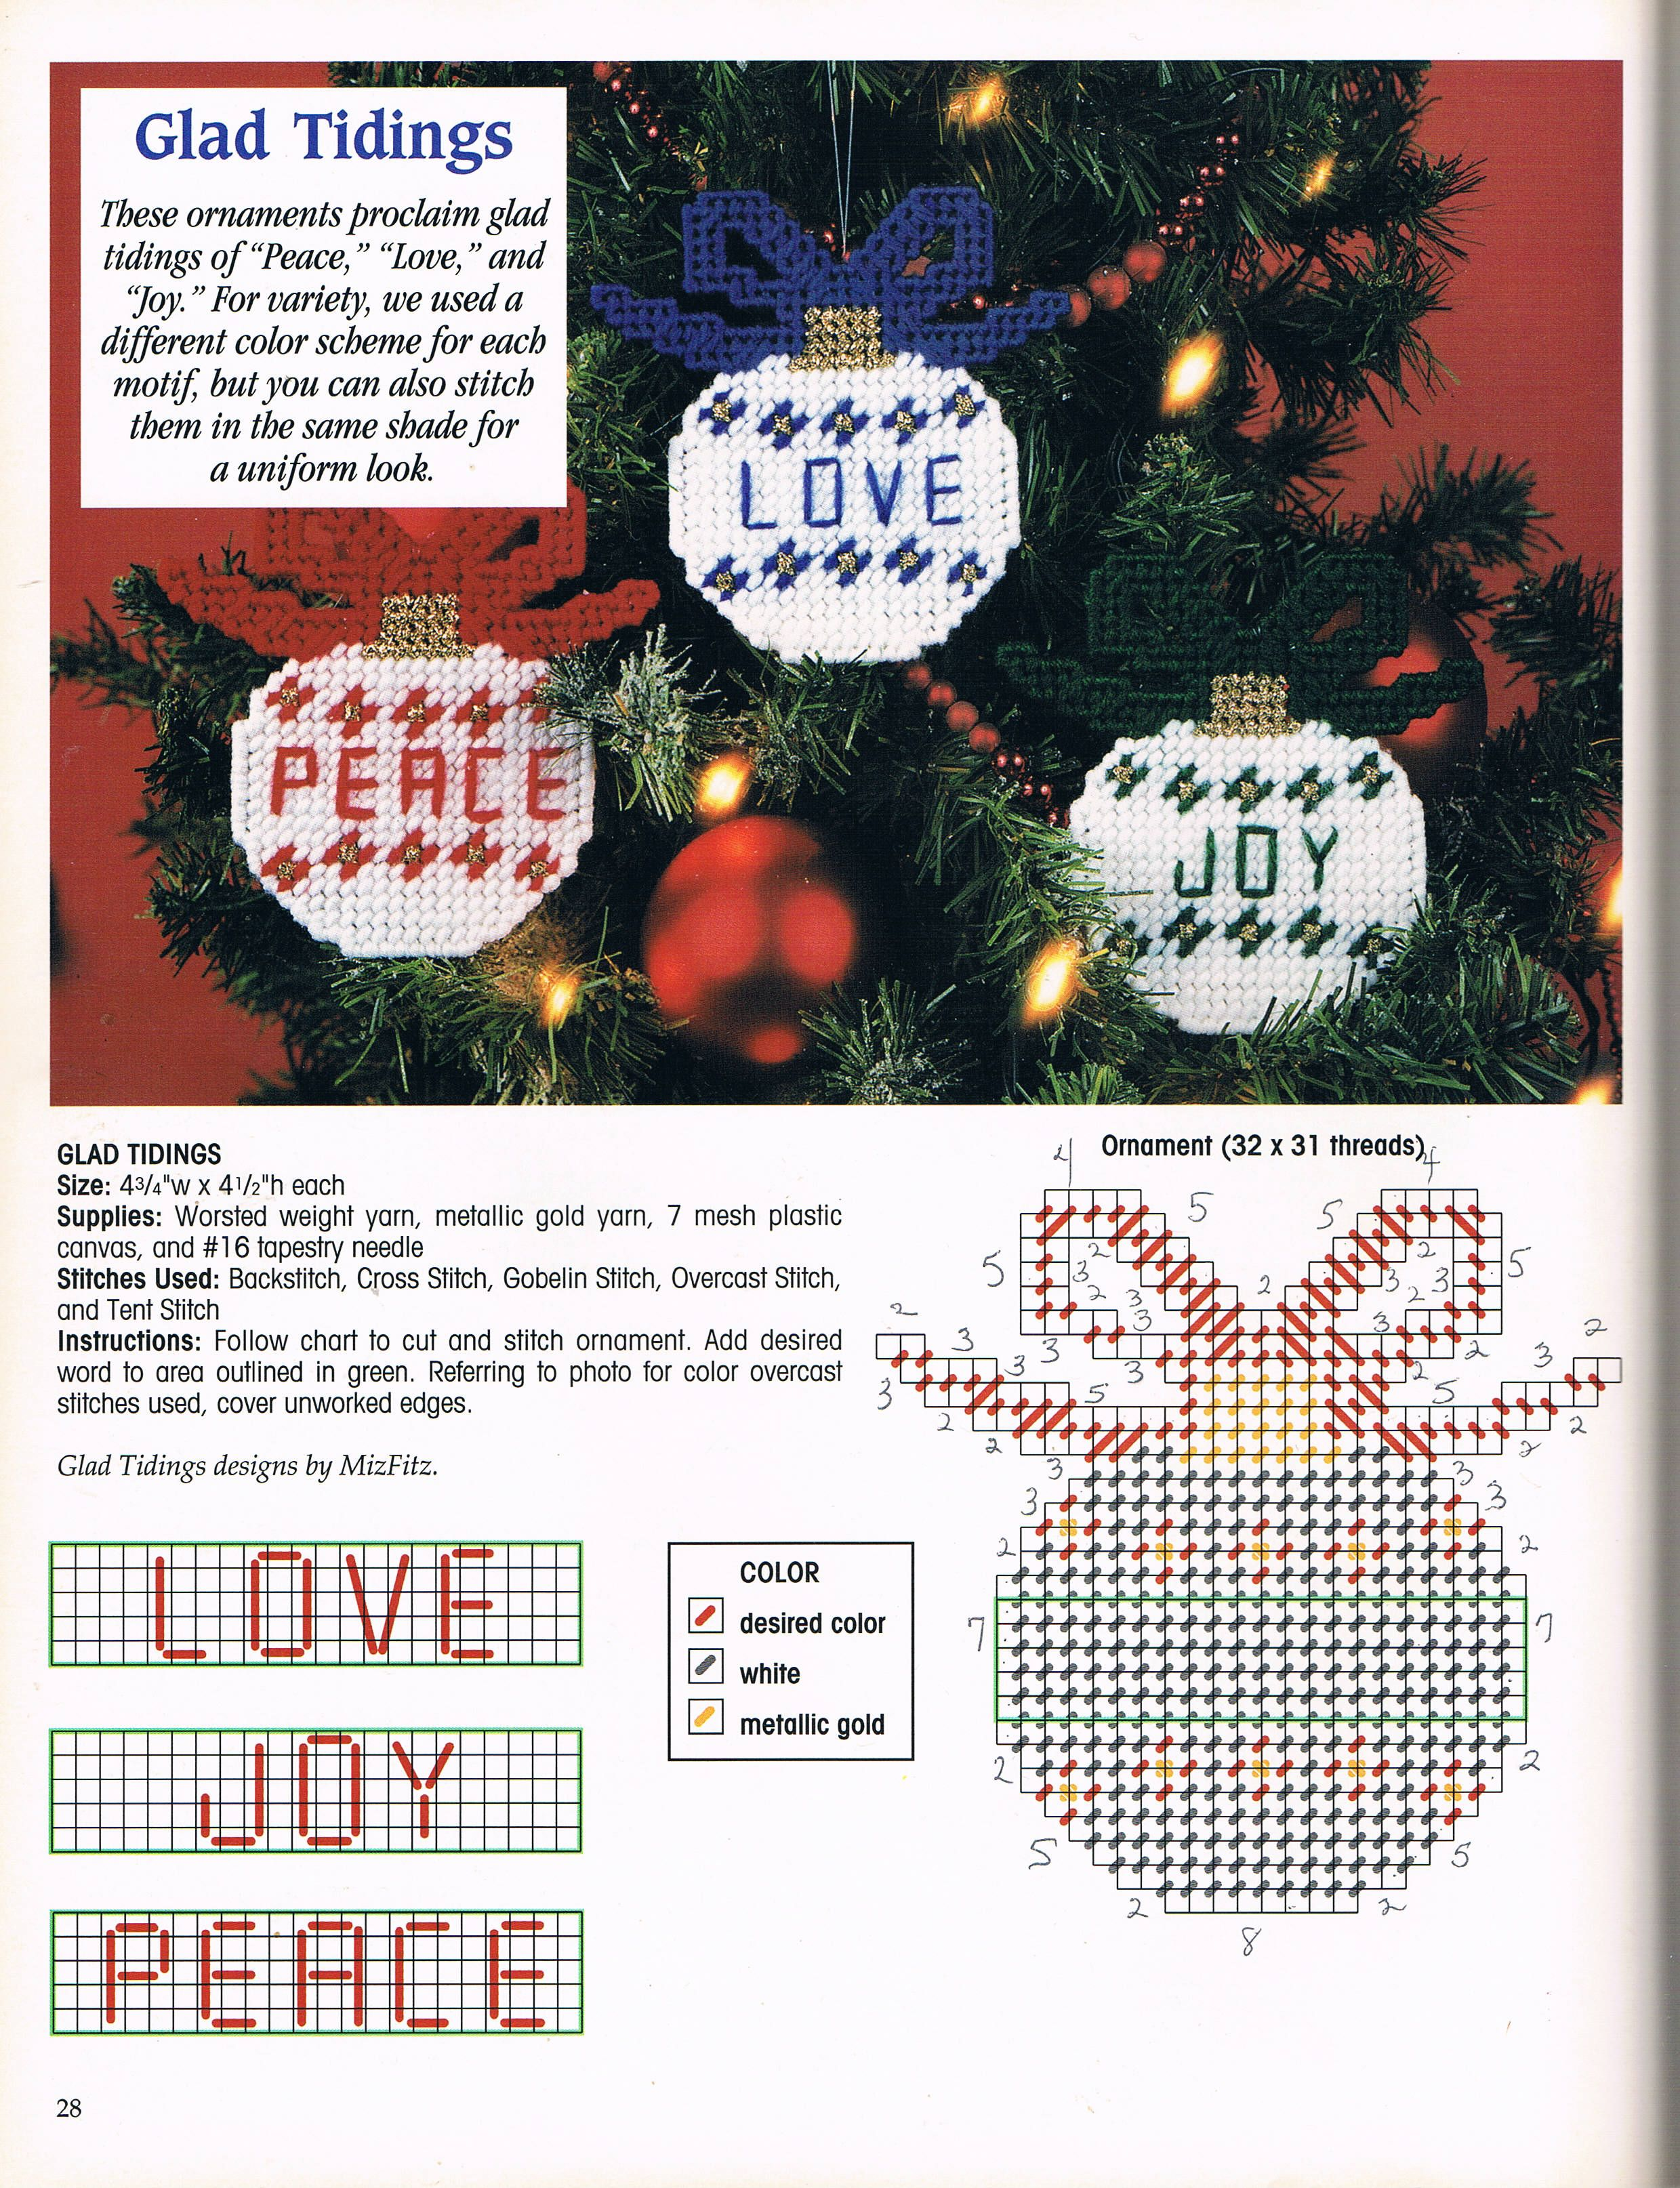 150 Extra Easy Ornaments Pg 29 Plastic Canvas Crafts Plastic Canvas Ornaments Plastic Canvas Christmas